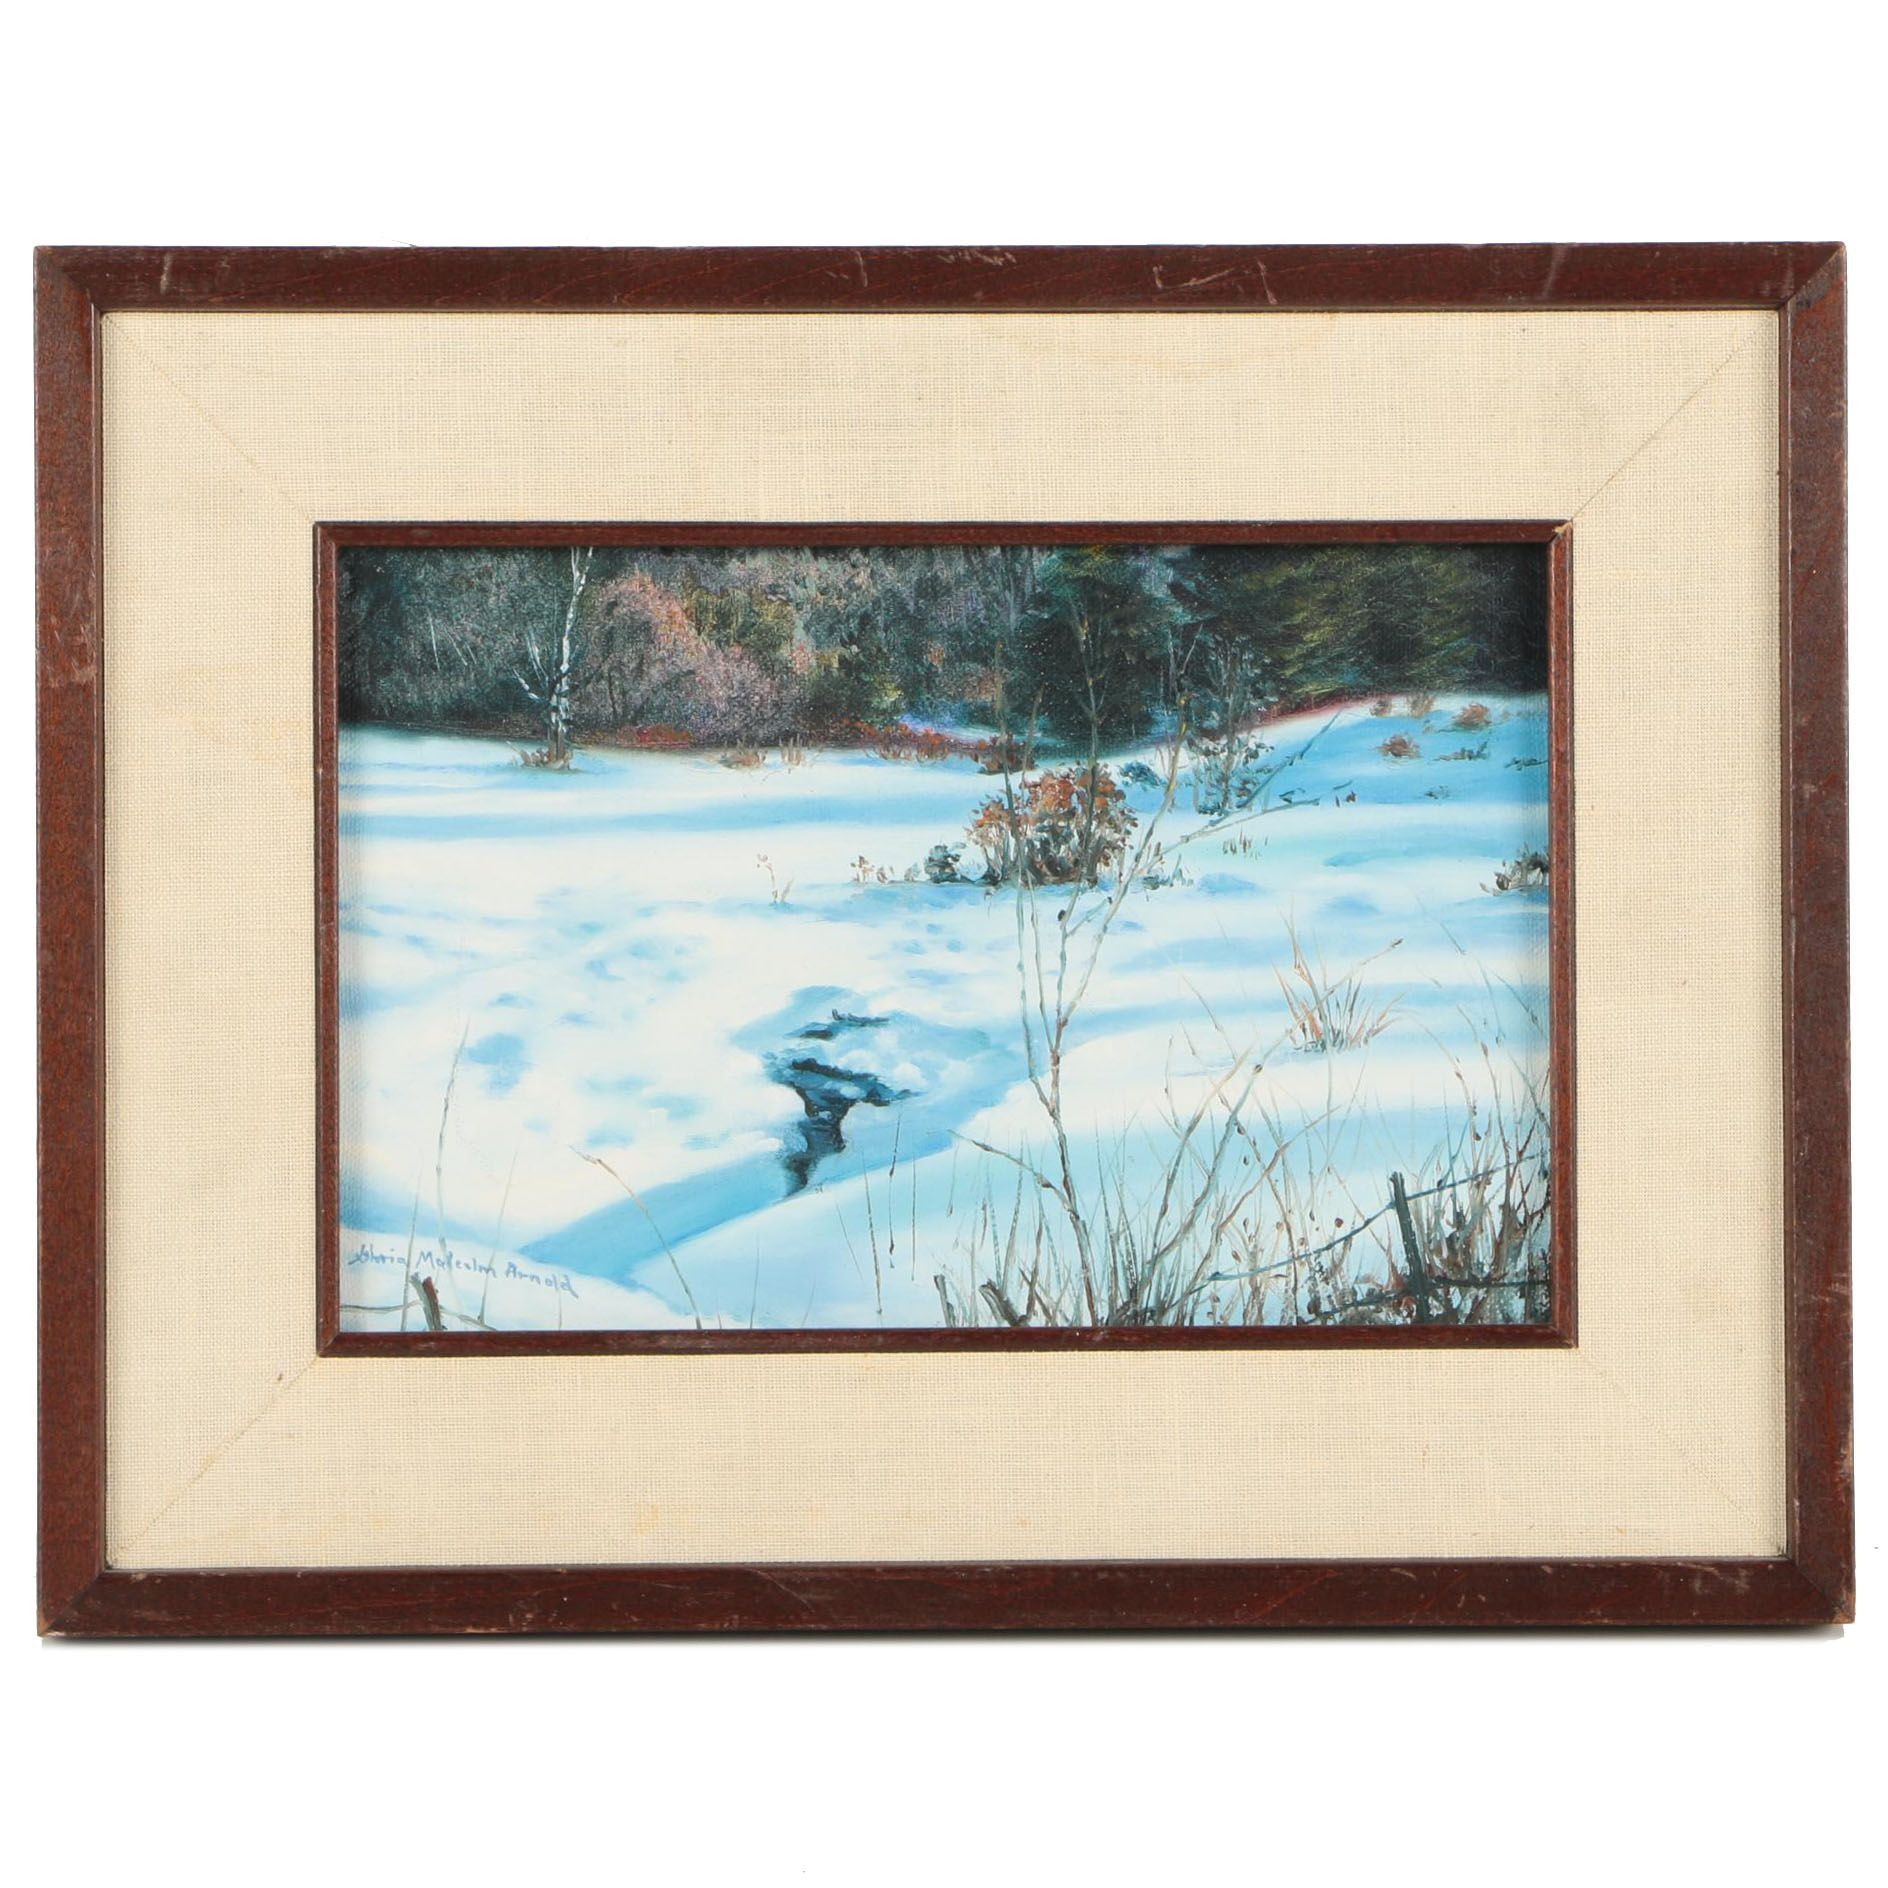 Gloria Malcolm Arnold Acrylic Painting of a Snowy Scene